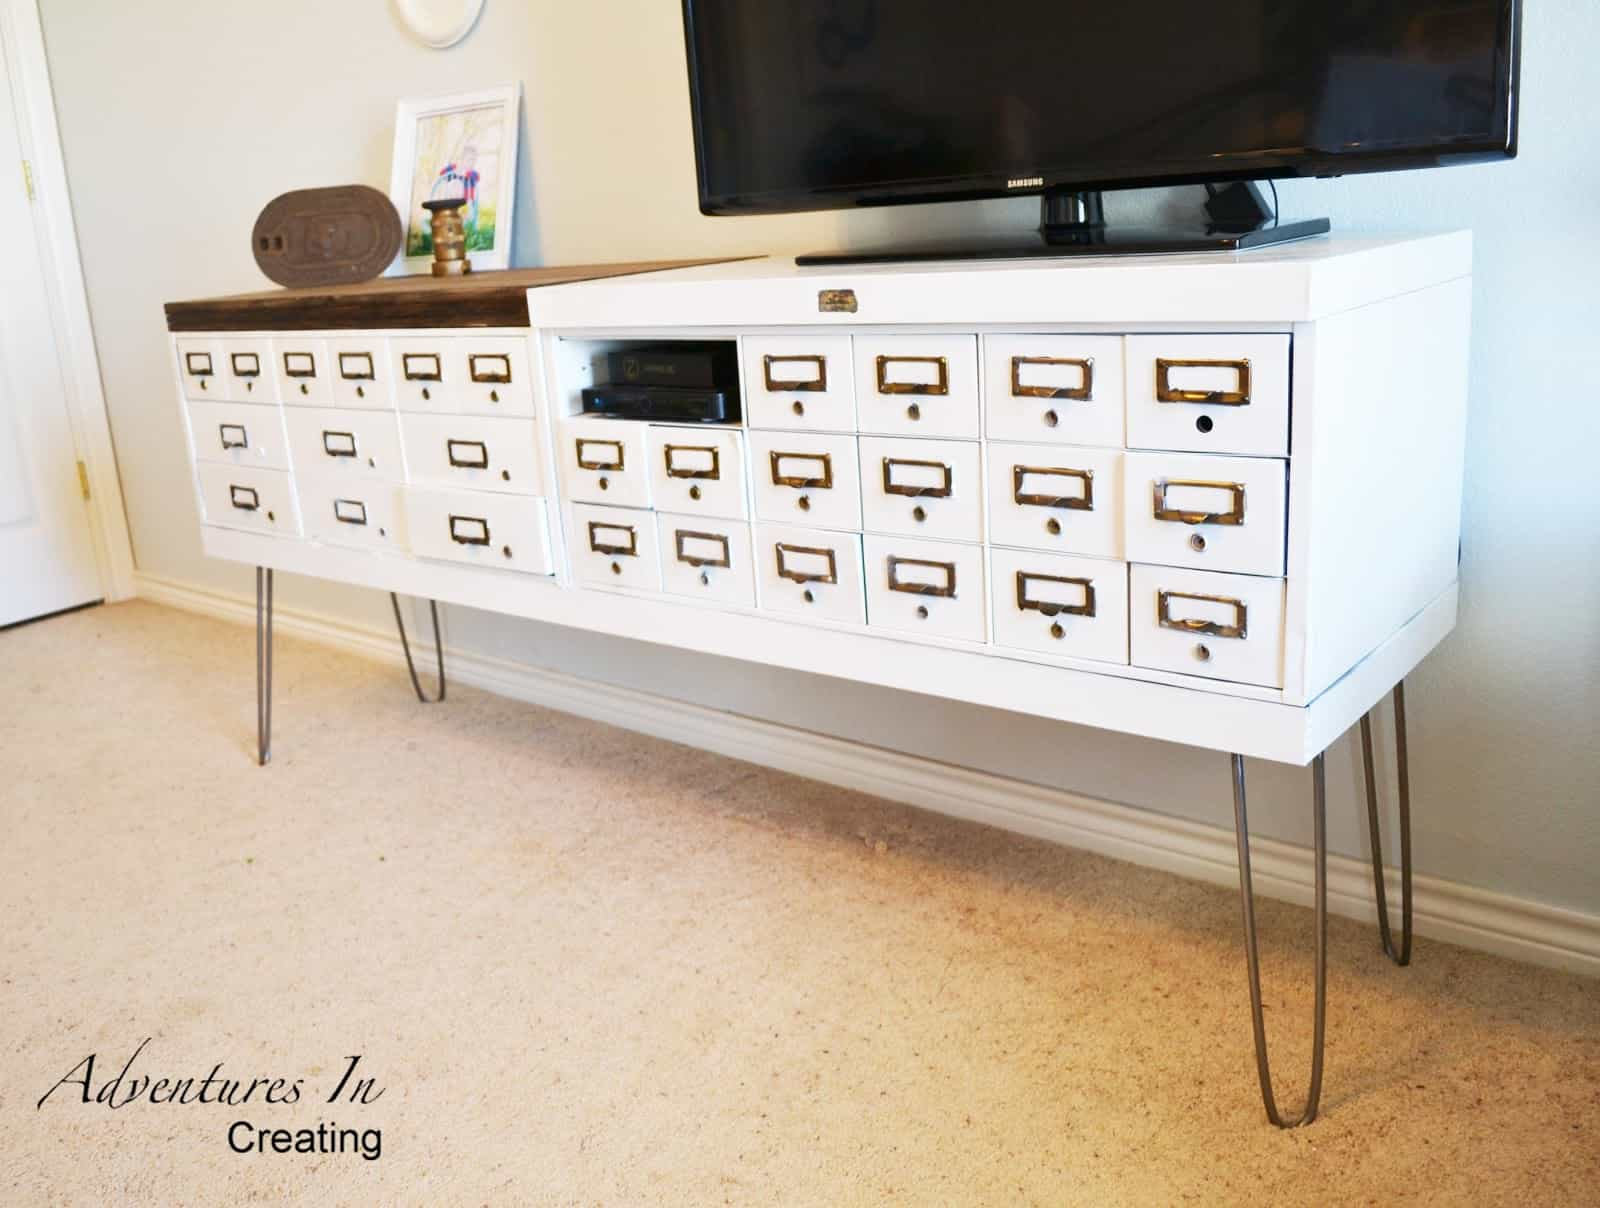 Vintage safe deposit box turned TV stand